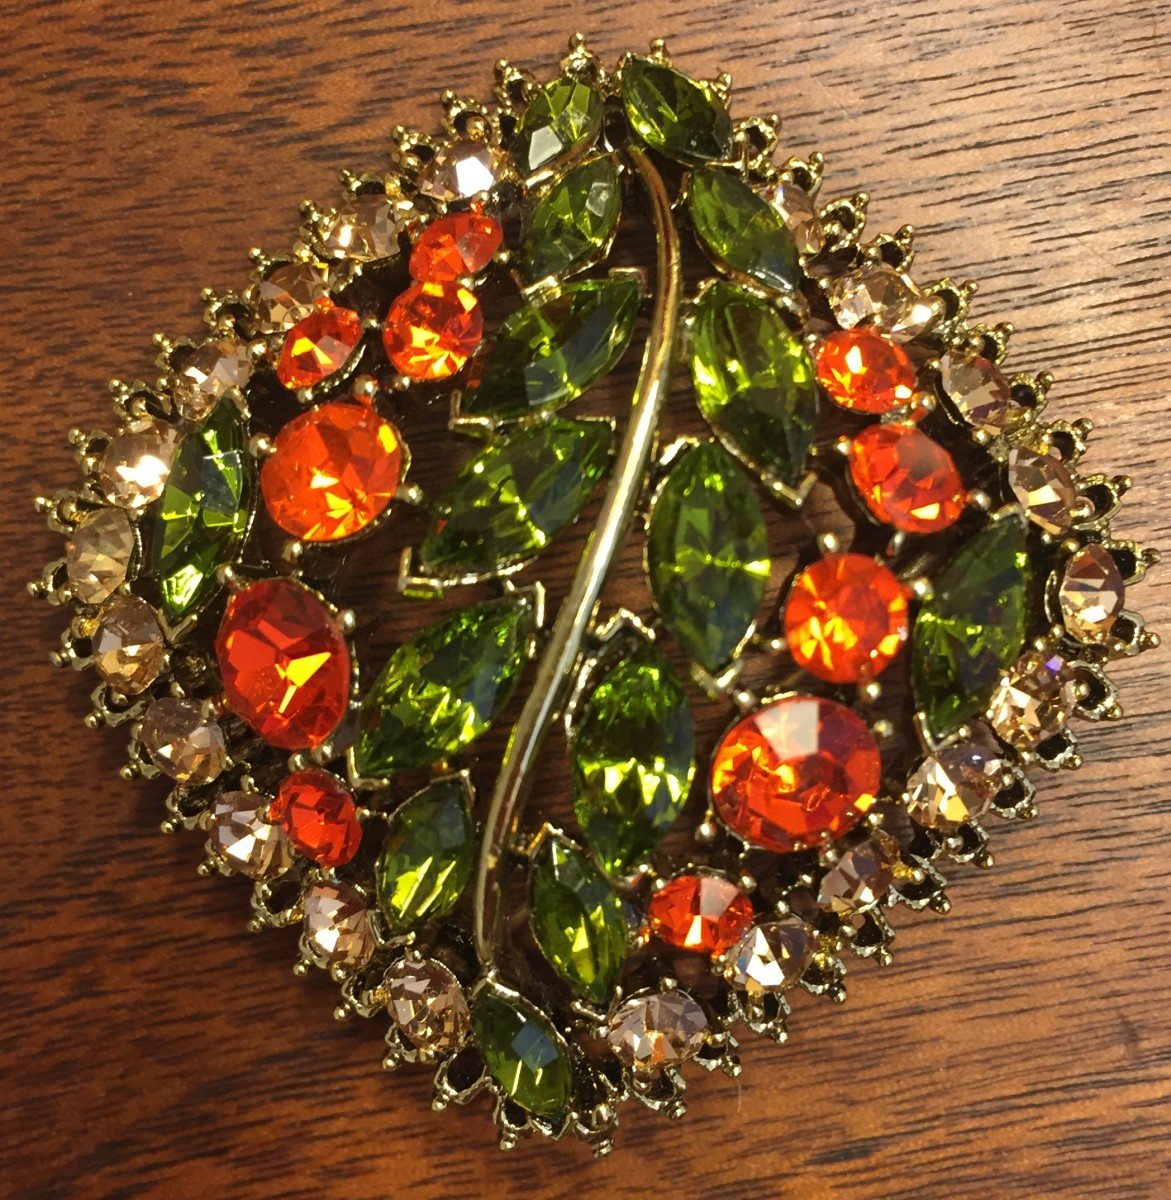 Brooch with colored rhinestones set in goldtone metal, 1950s-60s